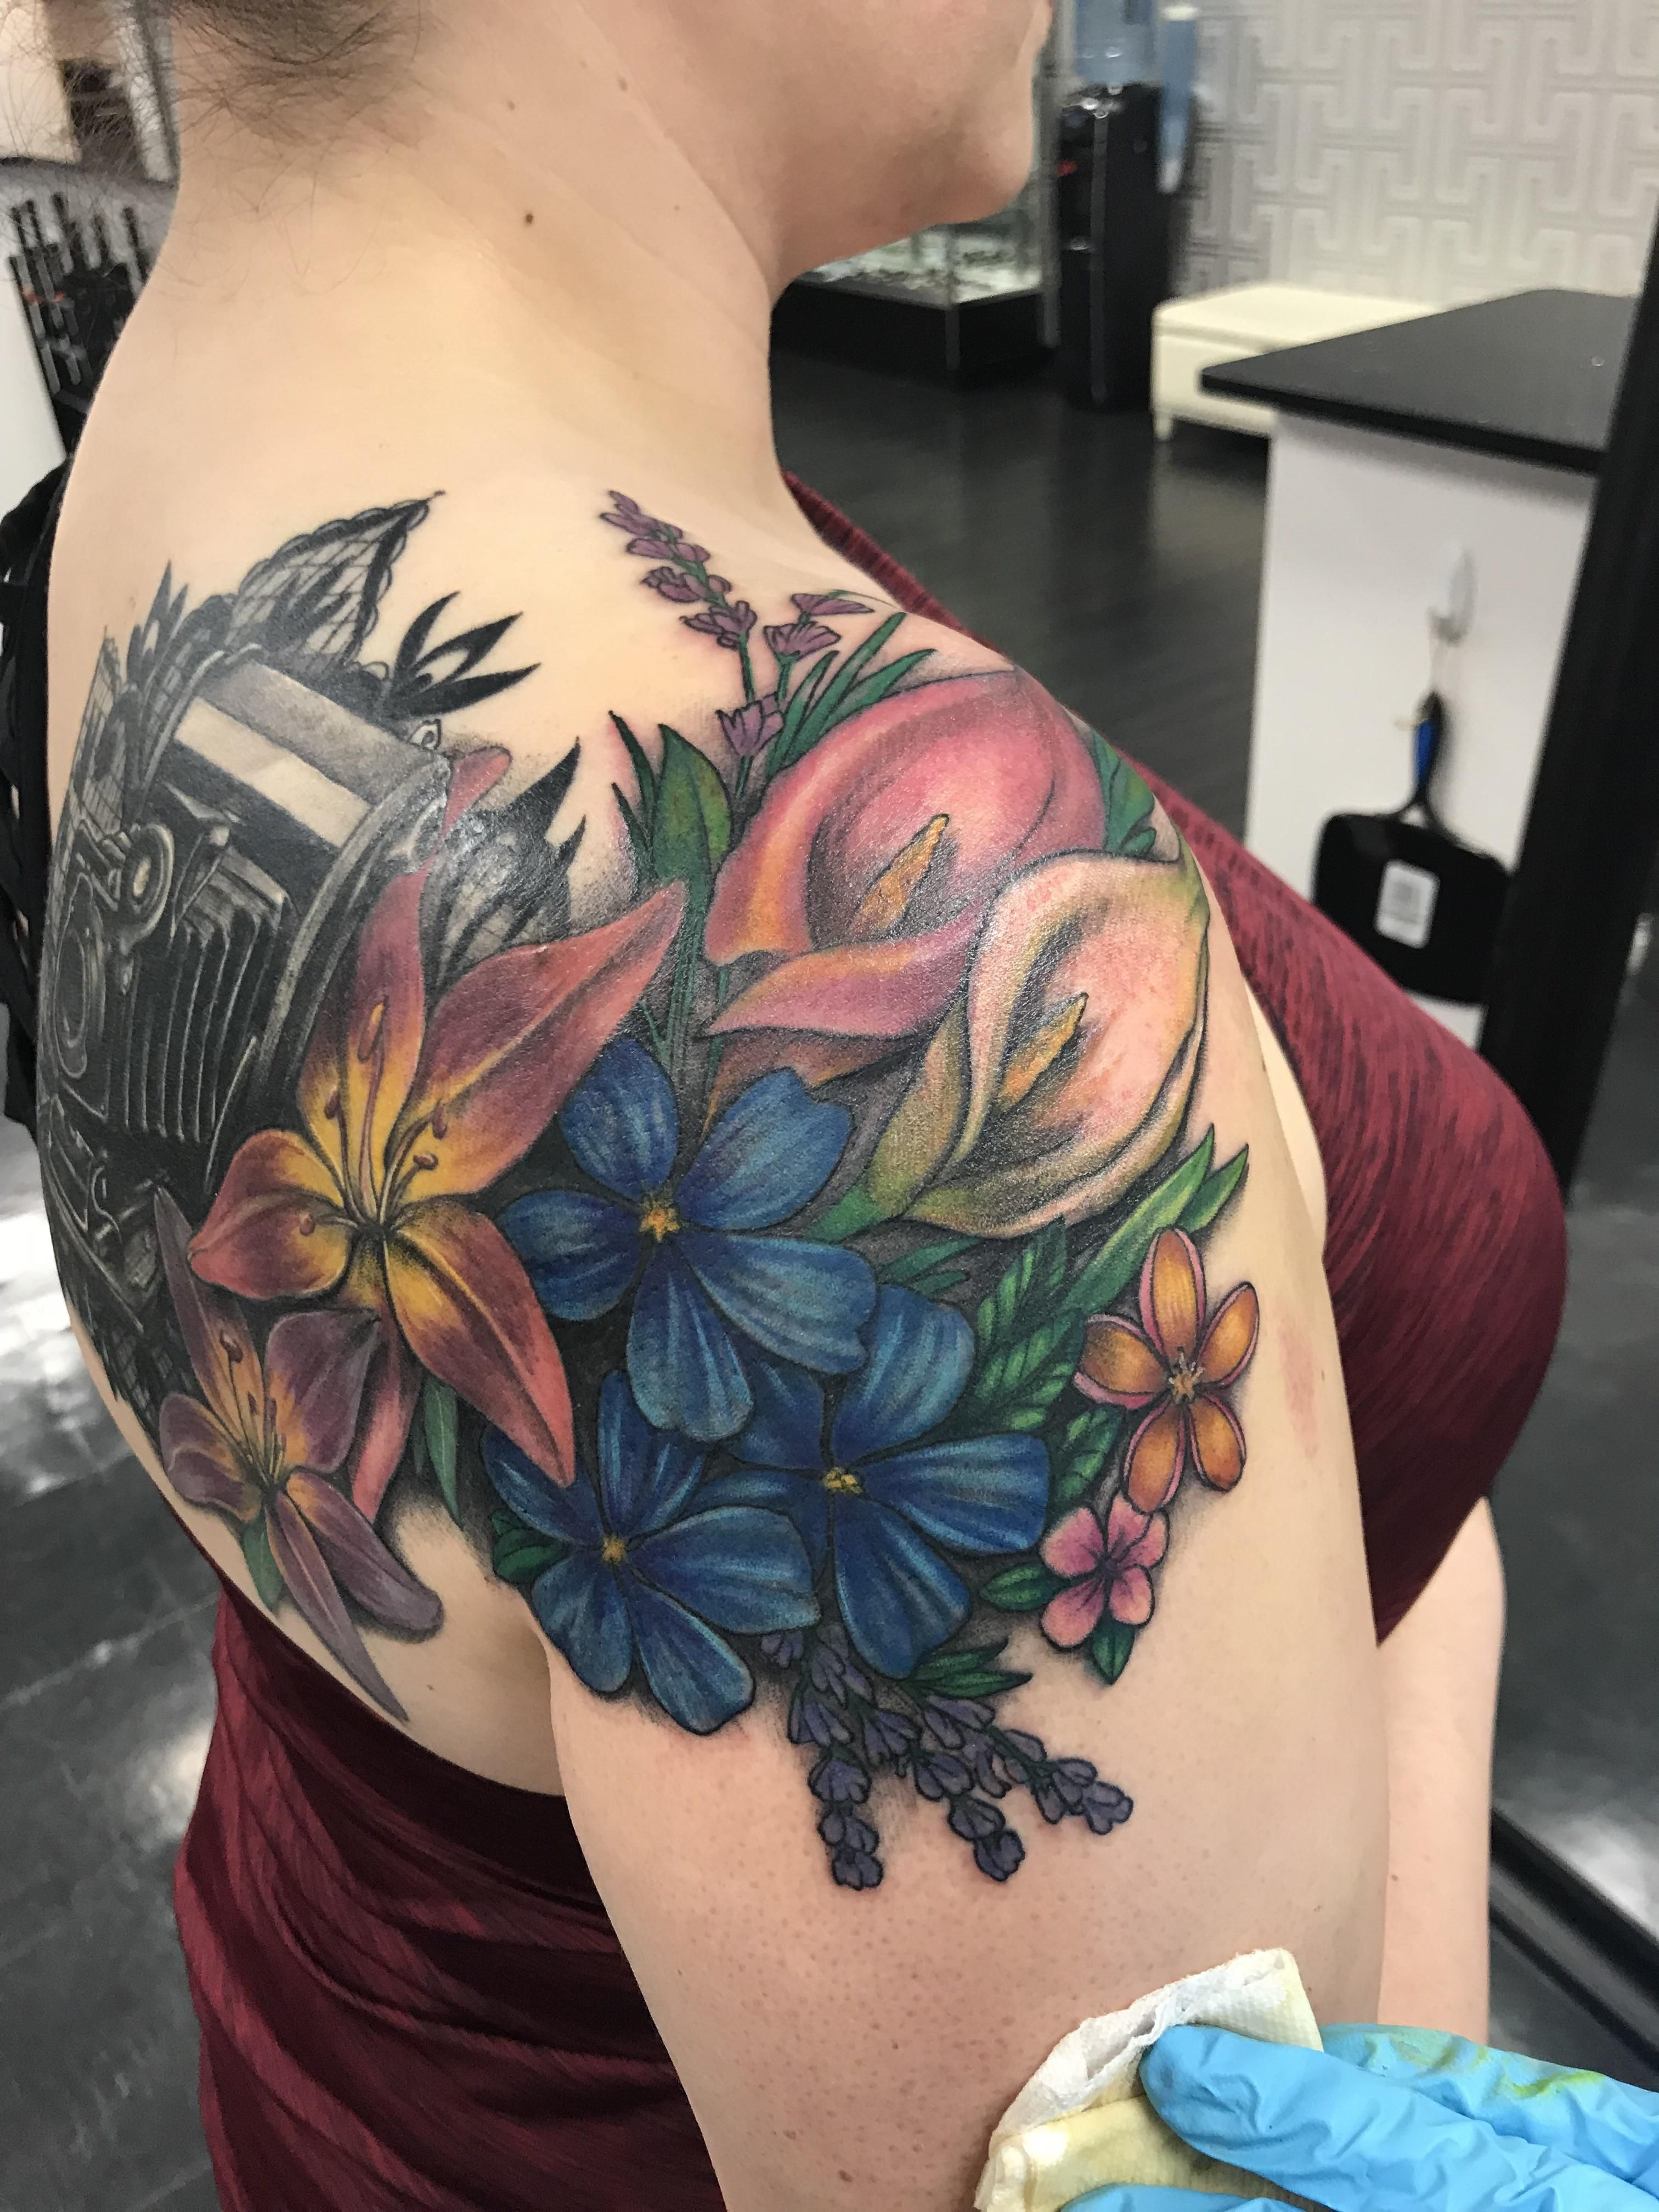 Added more flowers to the camera tattoo artist hayley